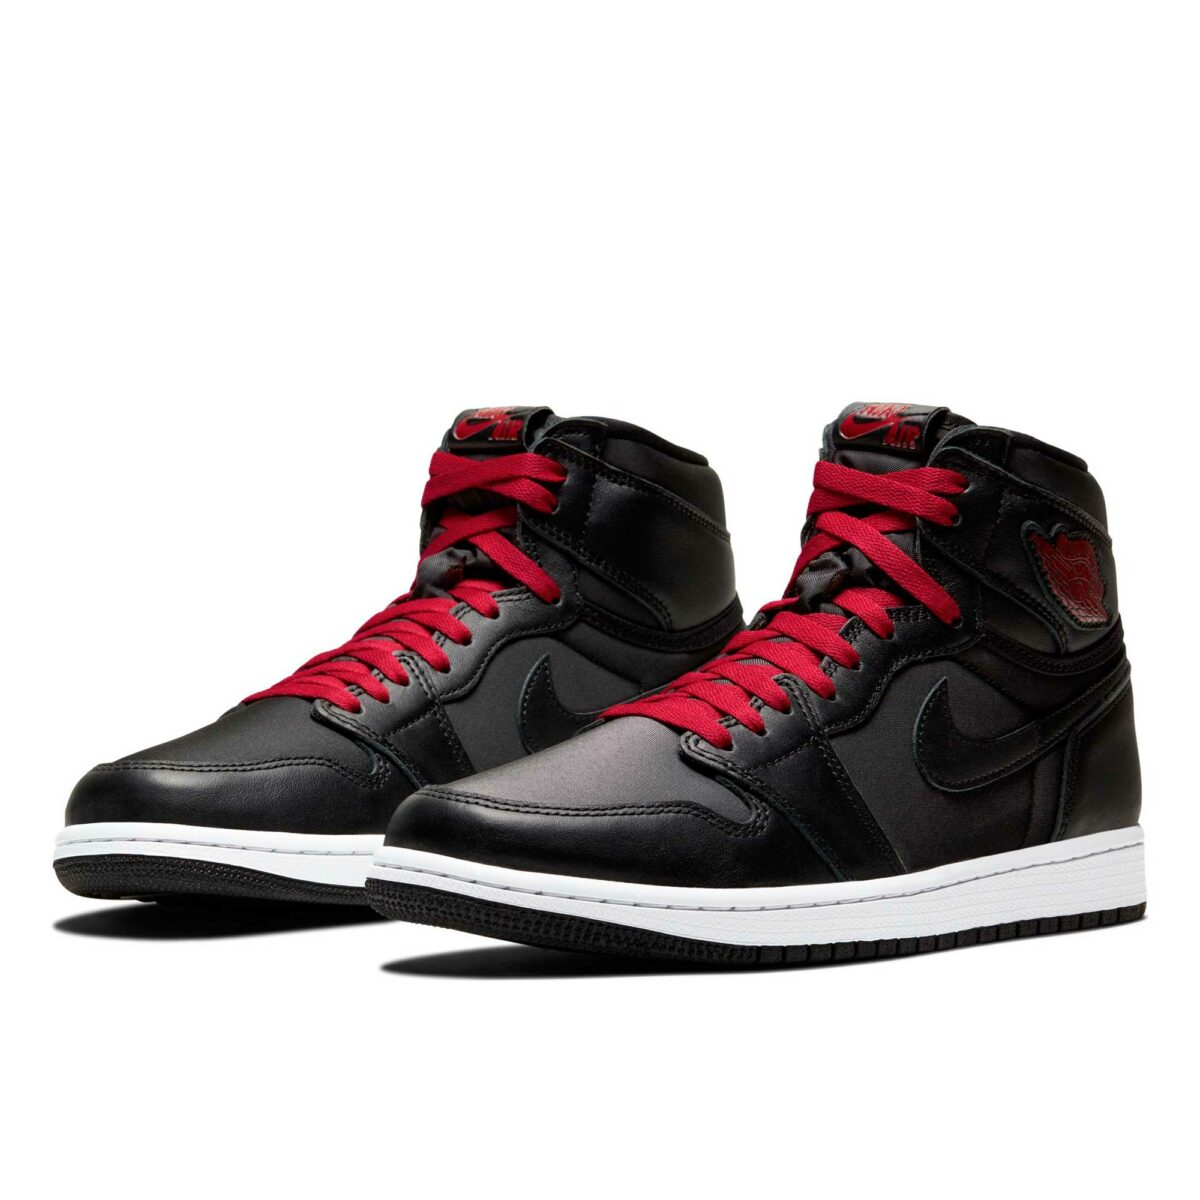 nike air Jordan 1 high og black red 555088_060 купить